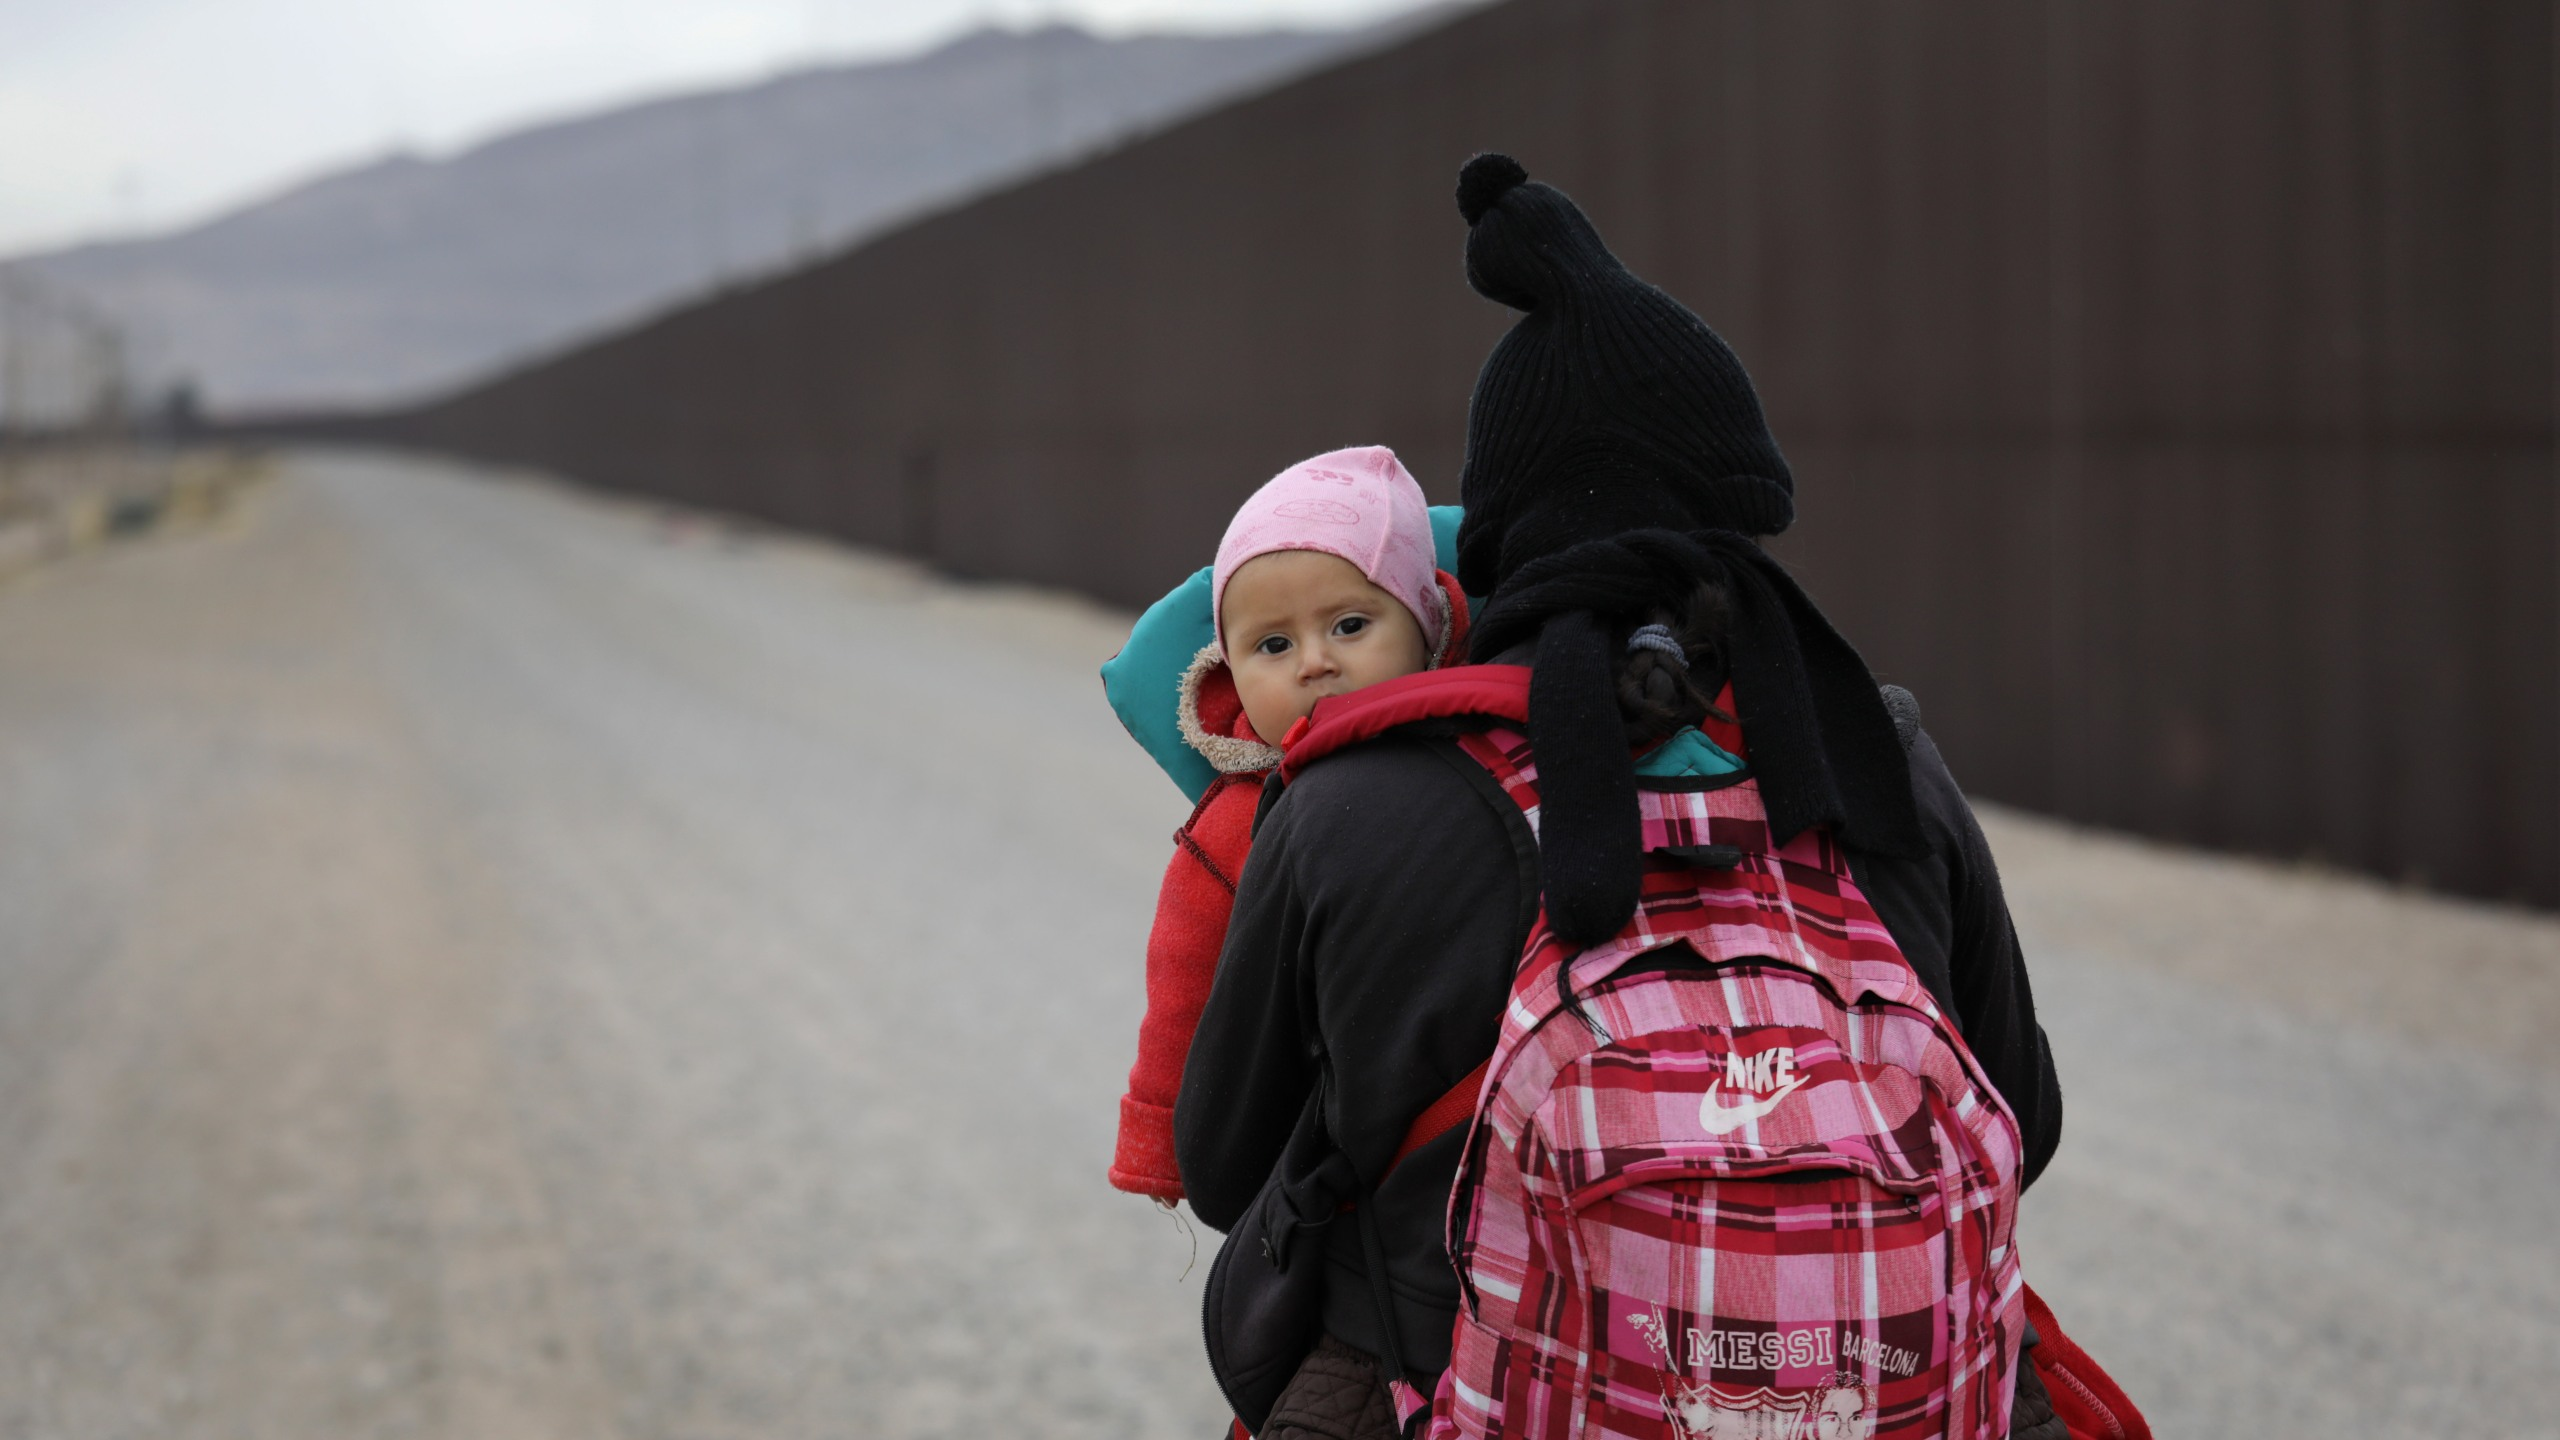 Central American migrants walk along the border fence after crossing the Rio Grande from Mexico on Feb. 1, 2019 in El Paso, Texas. (Credit: John Moore/Getty Images)